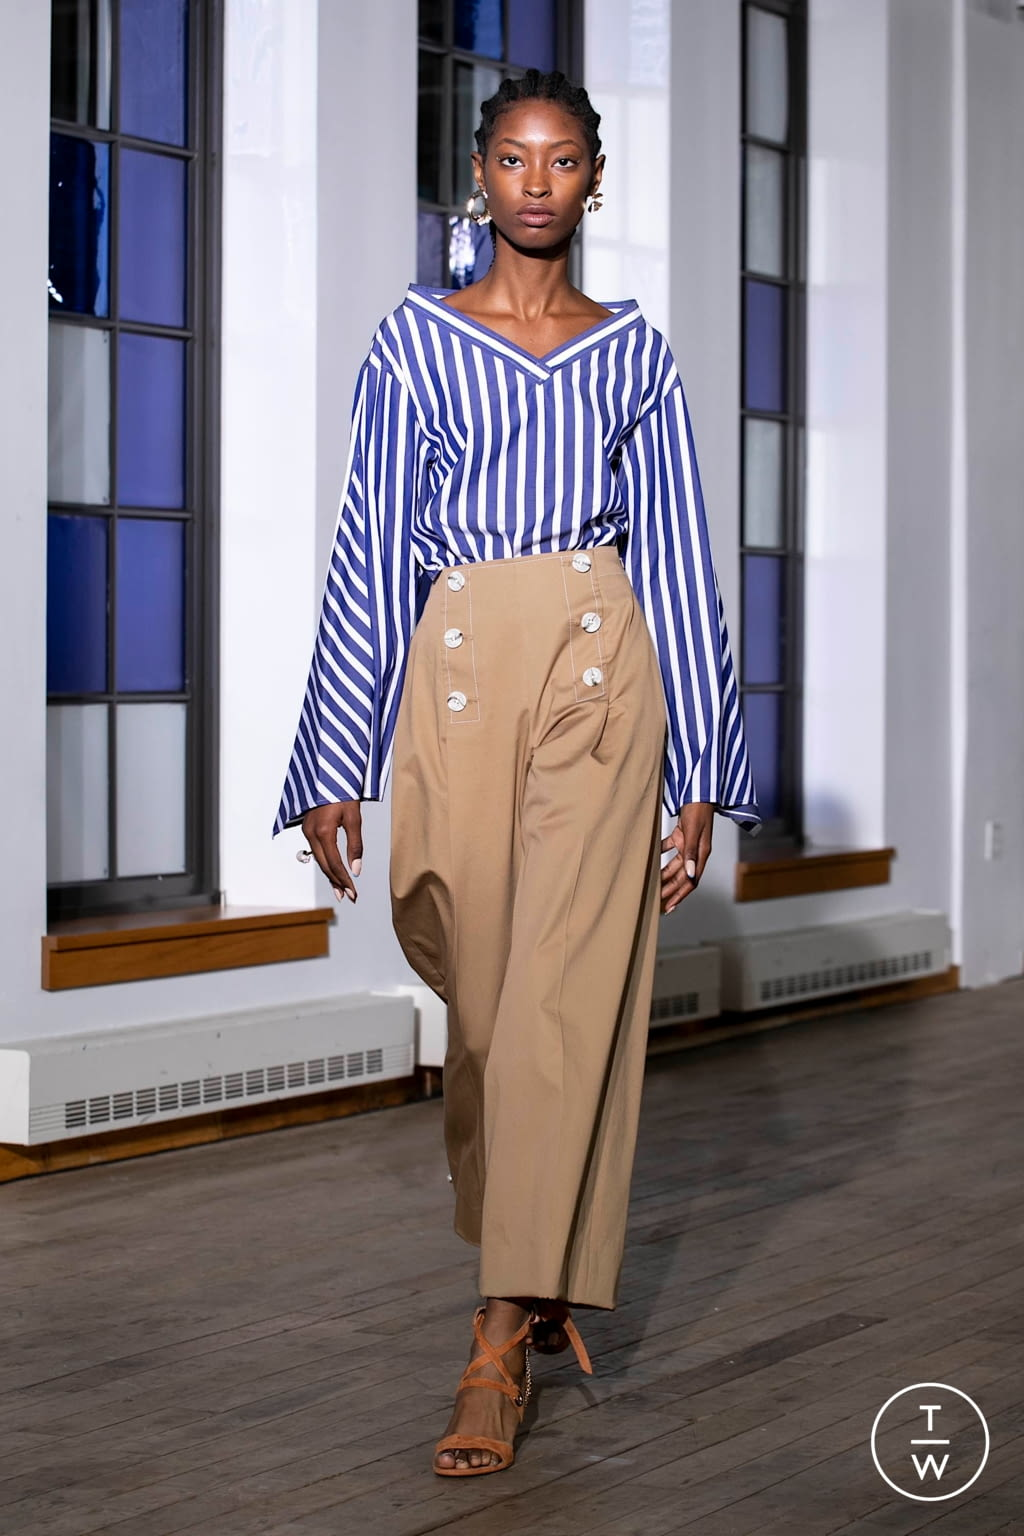 Fashion Week New York Spring/Summer 2020 look 10 from the Adeam collection 女装